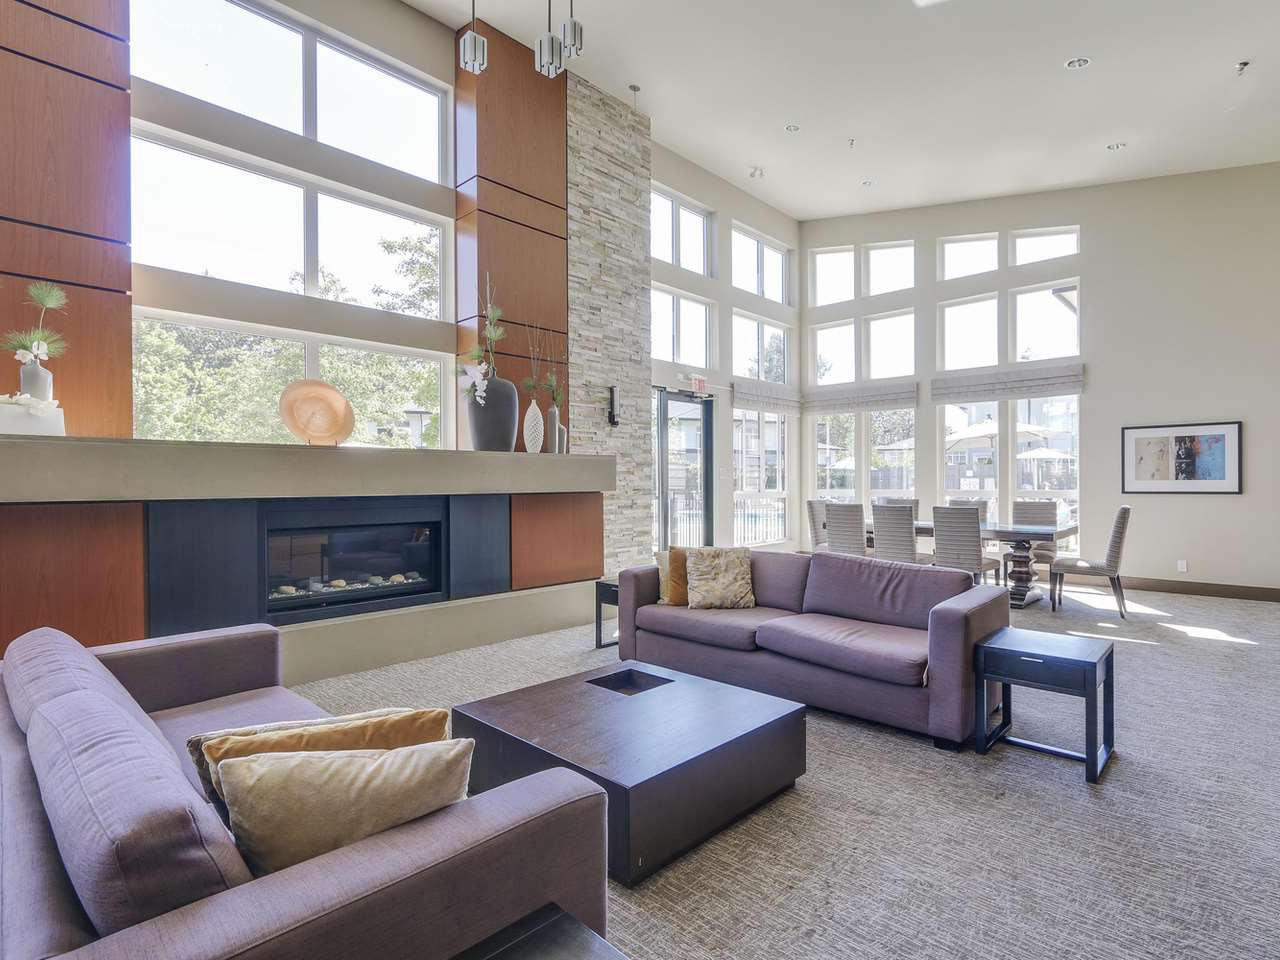 """Photo 14: Photos: 108 1150 KENSAL Place in Coquitlam: New Horizons Condo for sale in """"Windsor Gate"""" : MLS®# R2102595"""